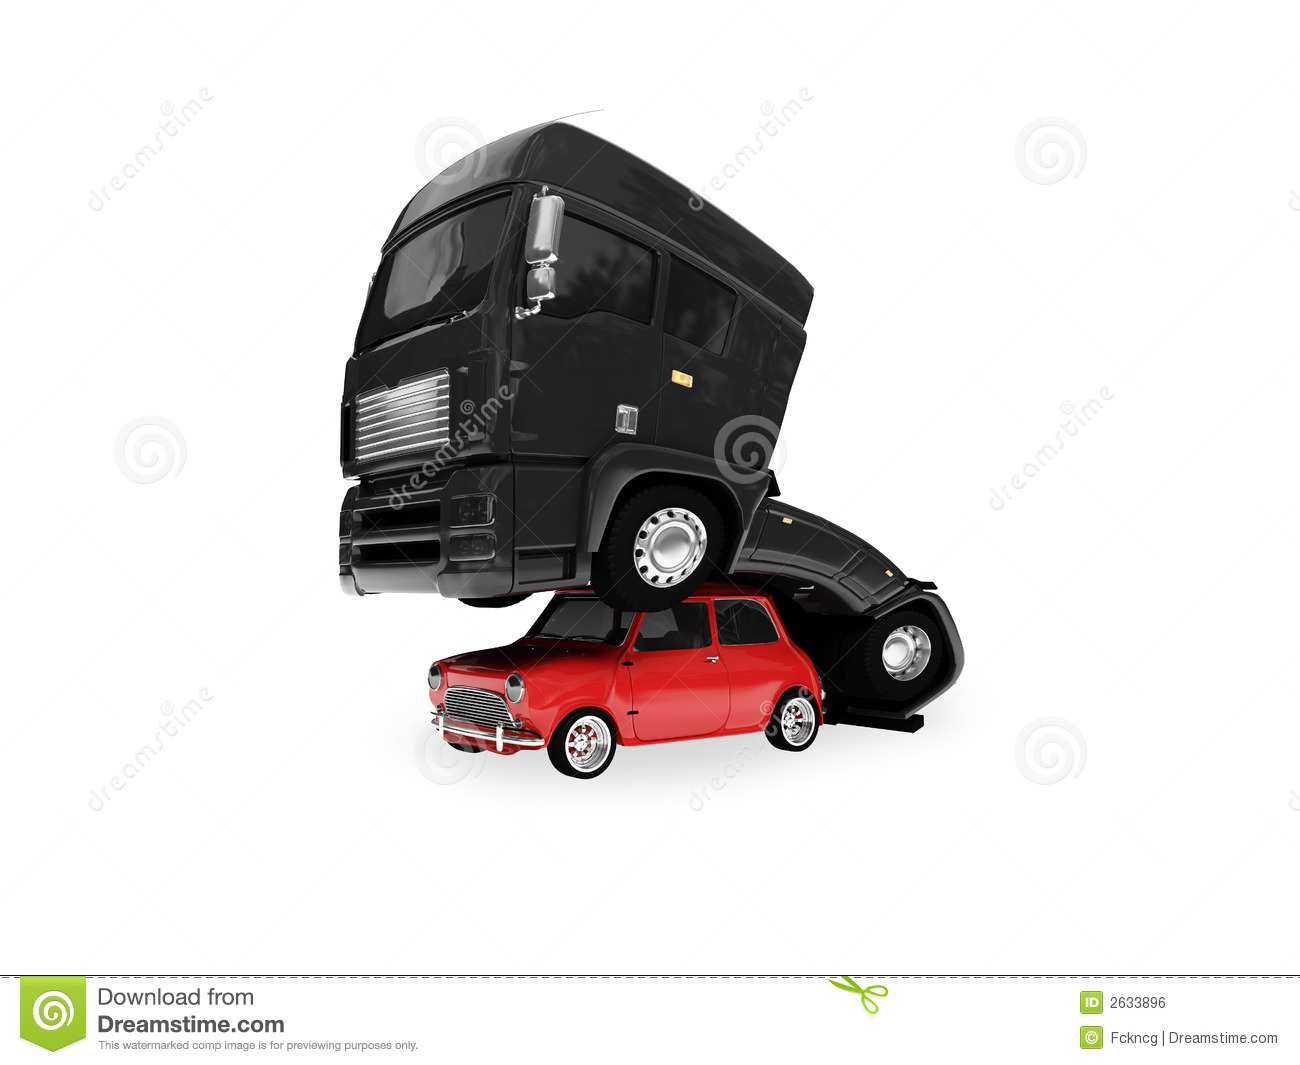 Having sex in a small car